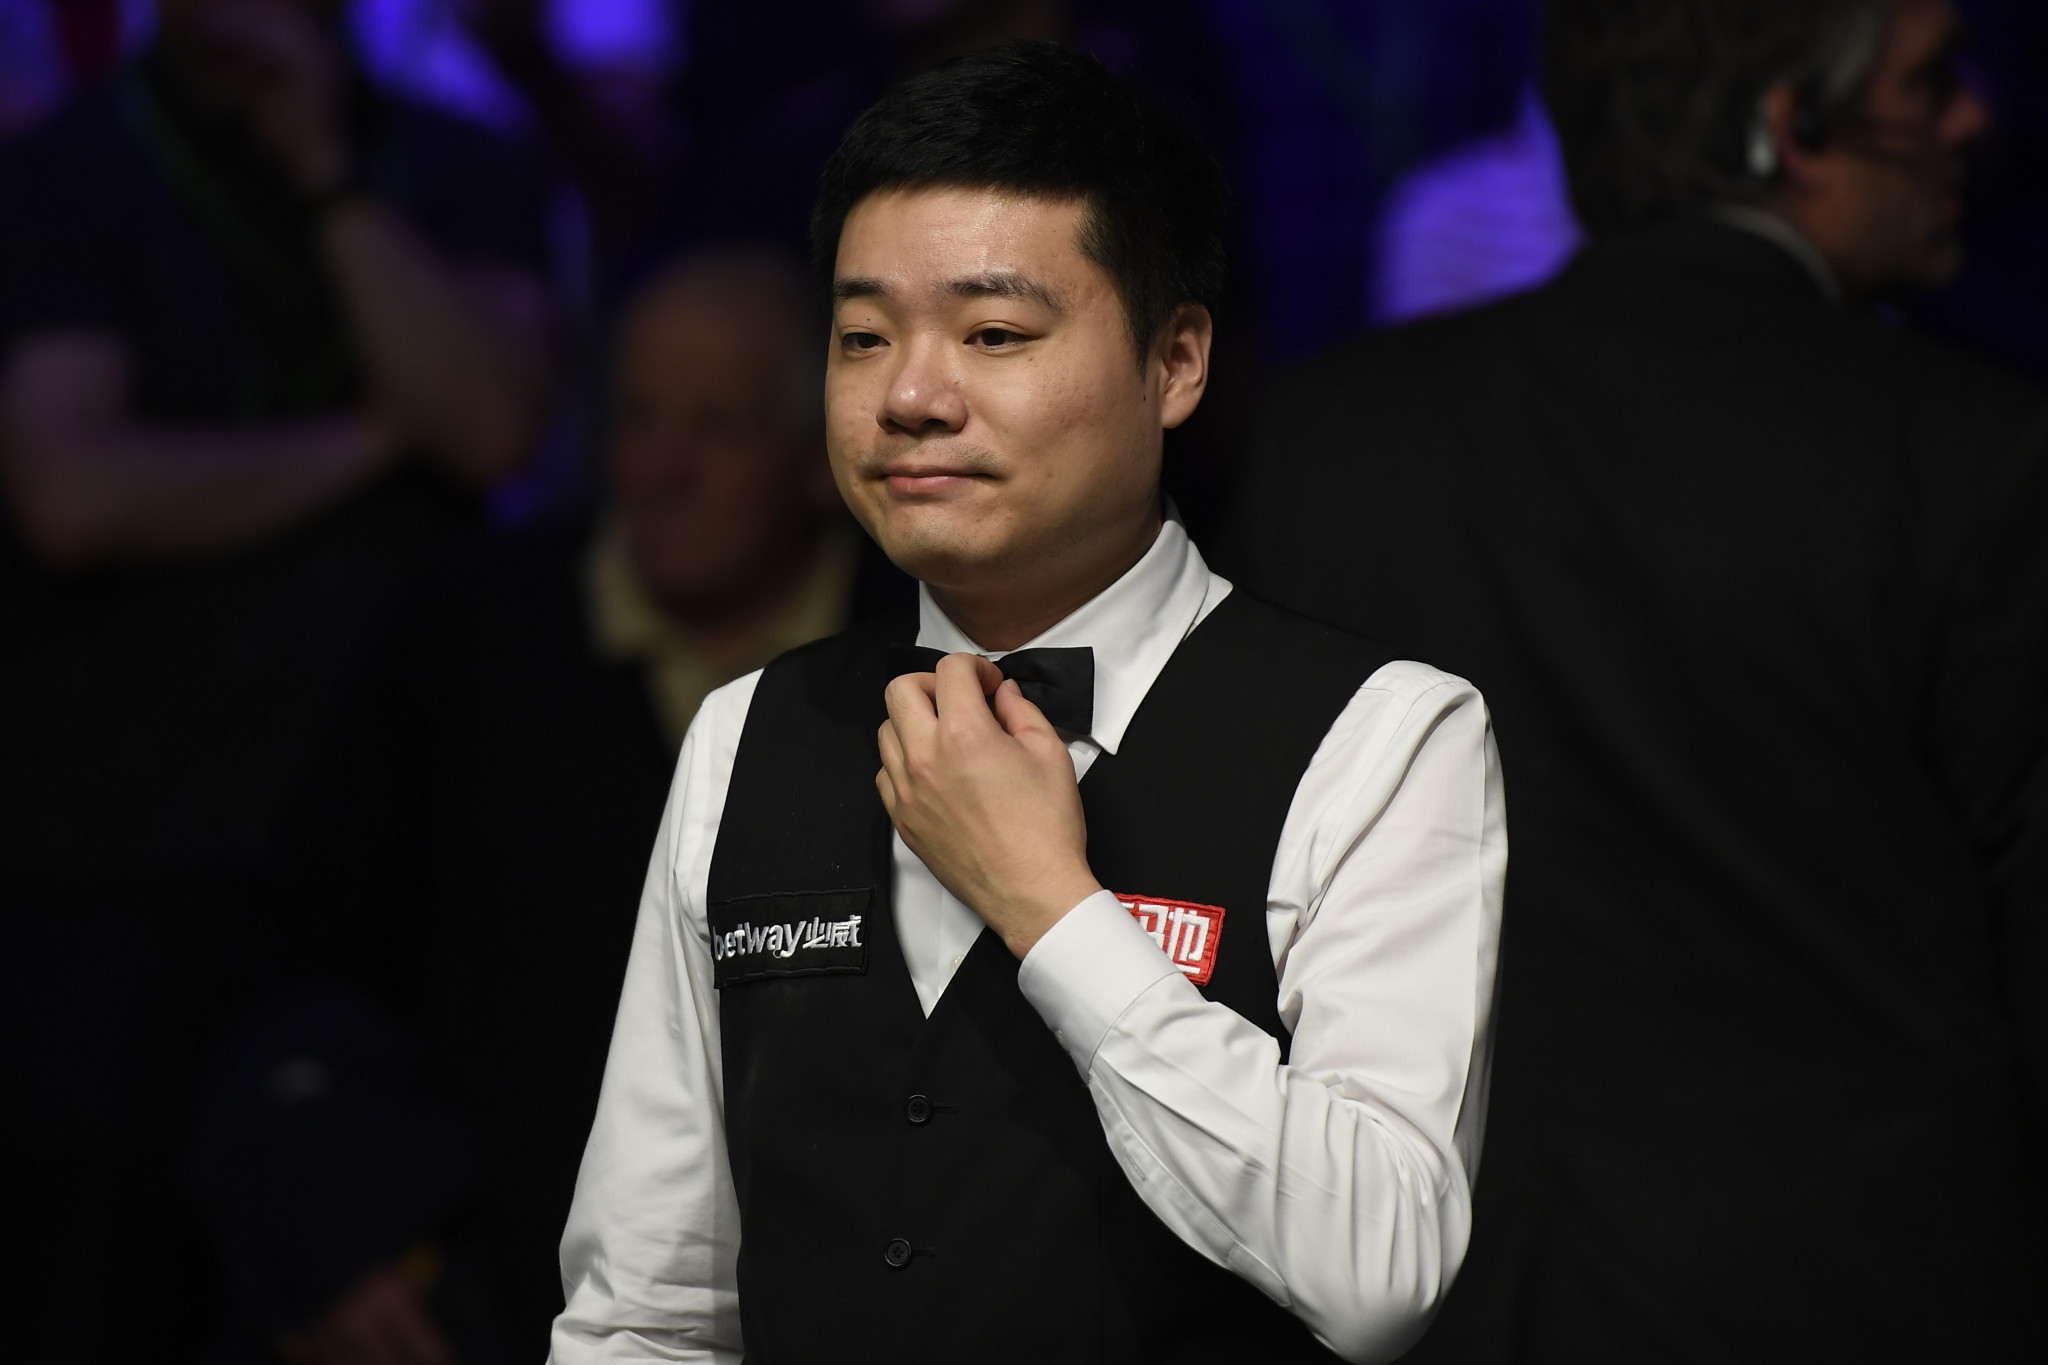 Ding triumphs in decider while two more former champions record wins on day two of World Snooker Championship